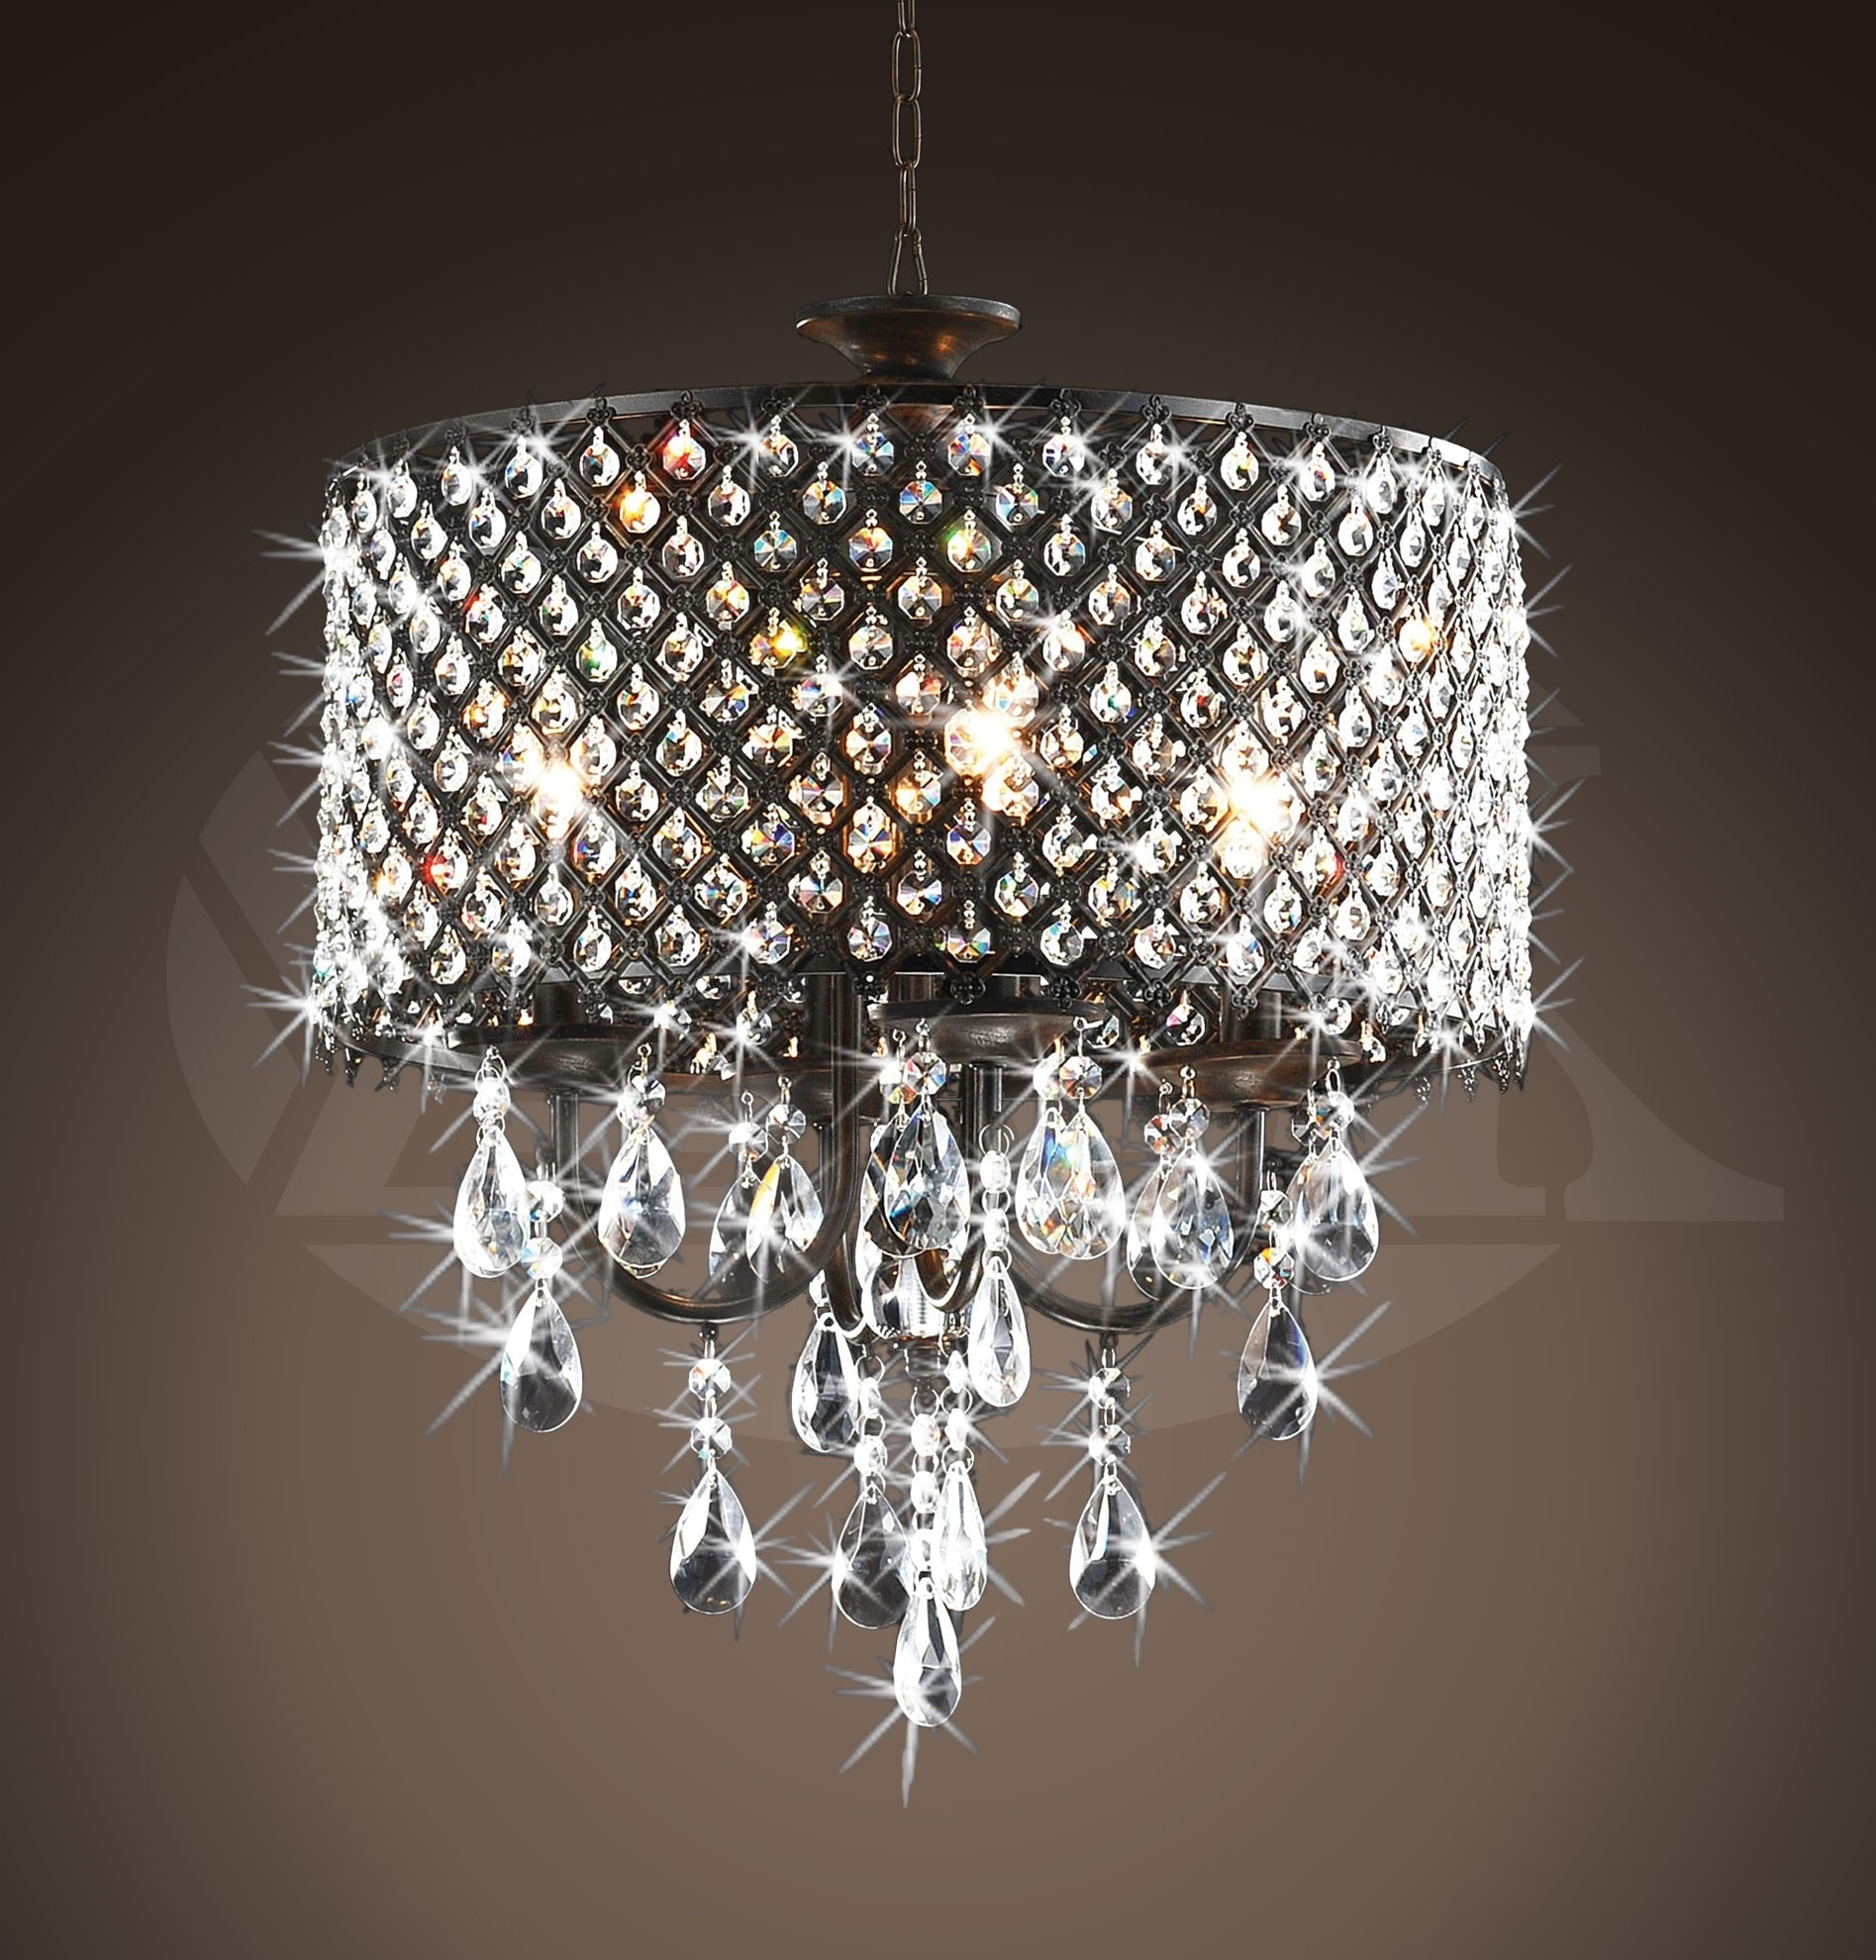 Most Popular Rachelle 4 Light Round Antique Bronze Brass Crystal Chandelier With Brass And Crystal Chandeliers (View 14 of 20)